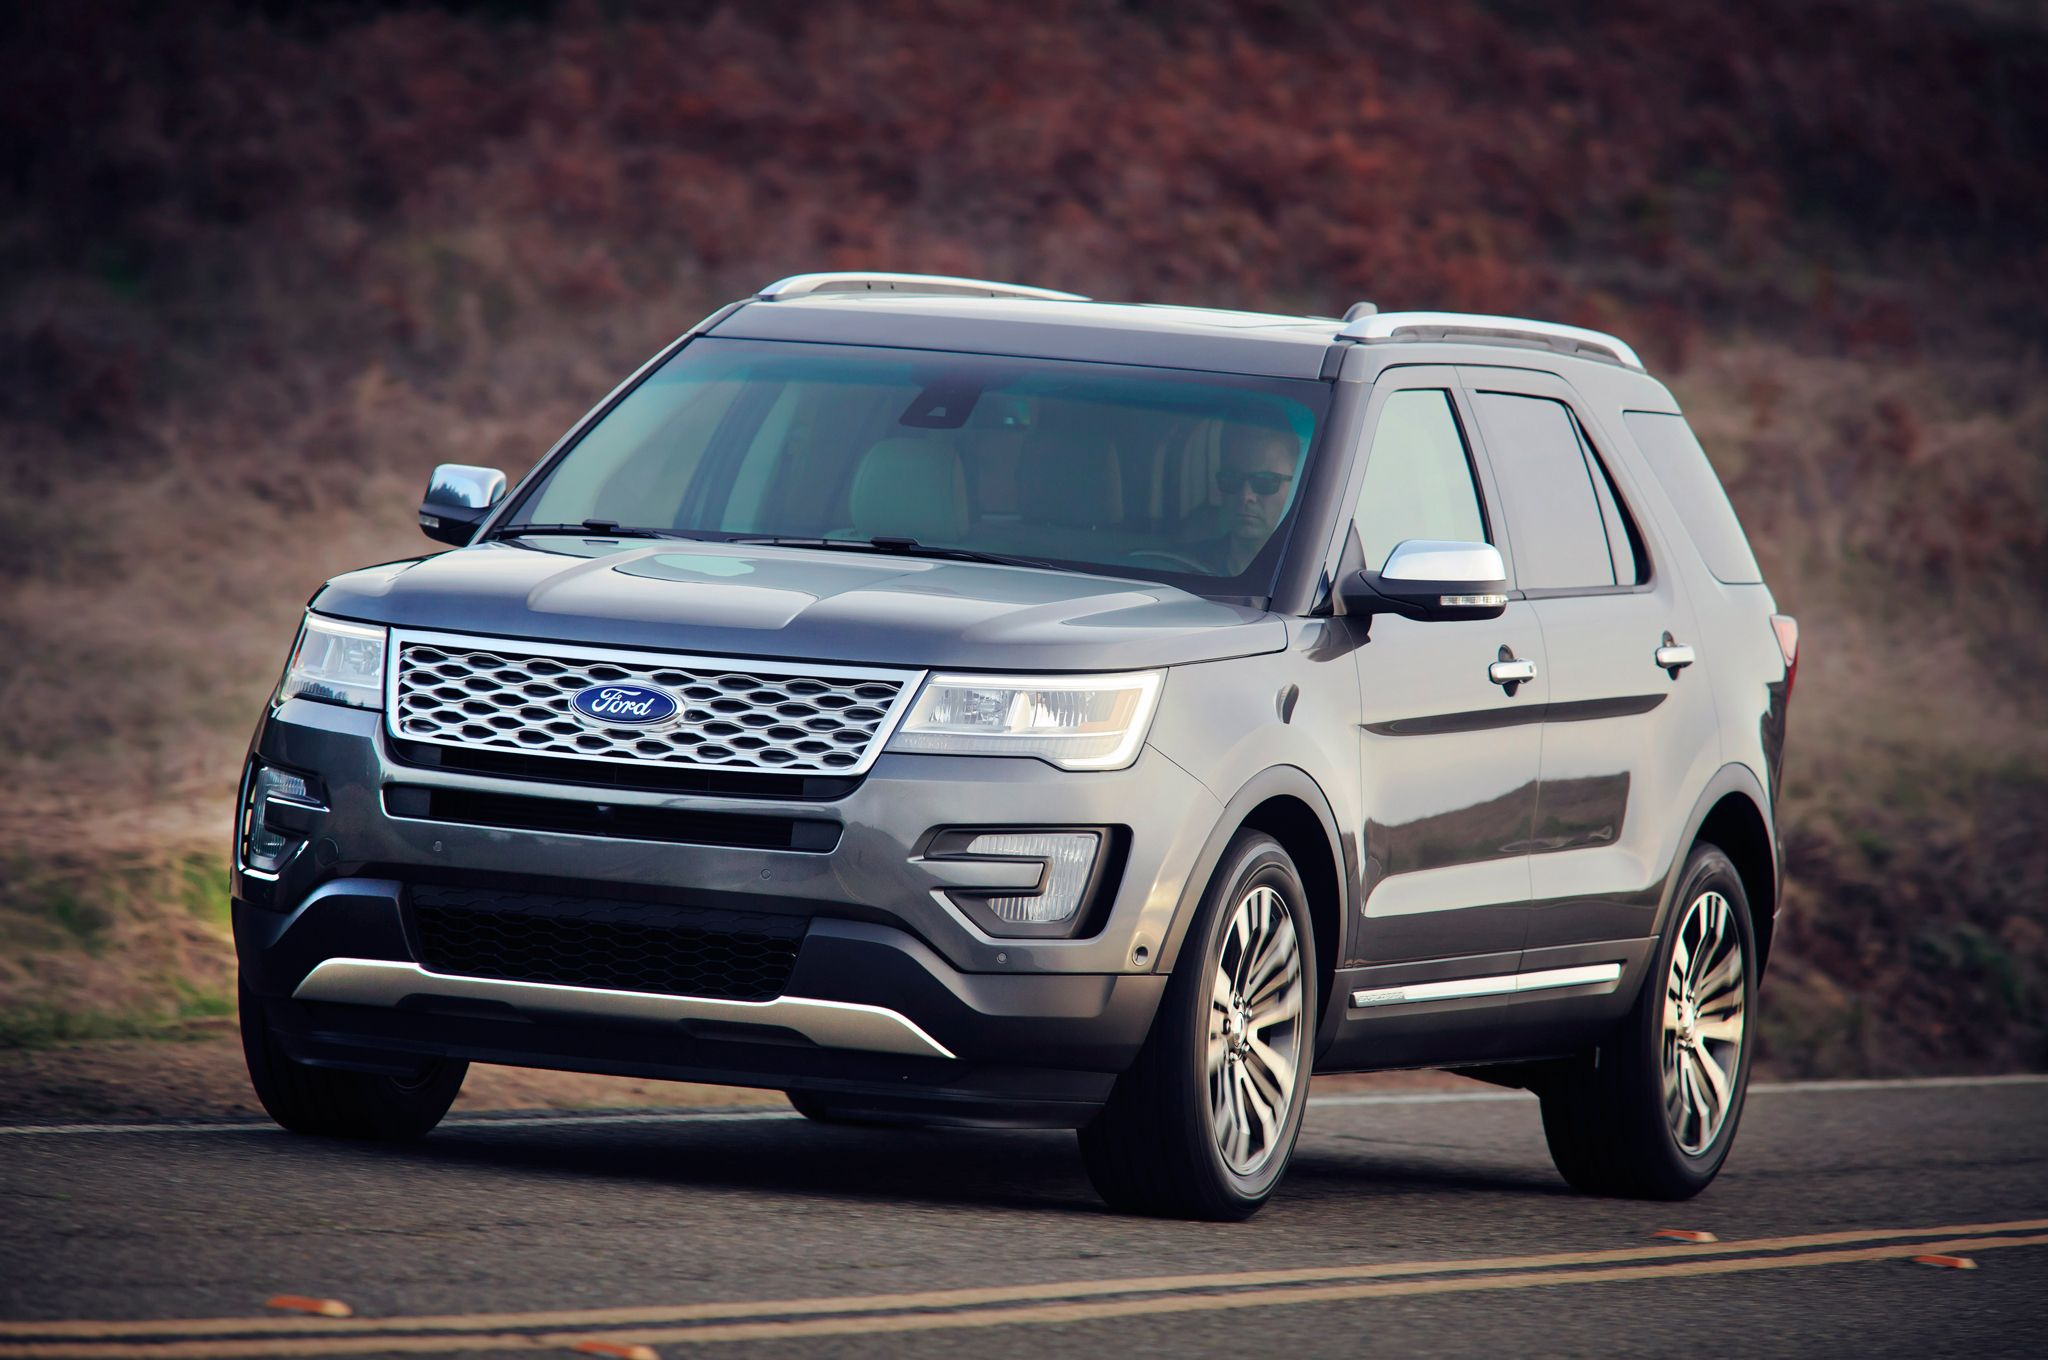 2016 ford explorer platinum ford suvs and crossovers ford rh pinterest com